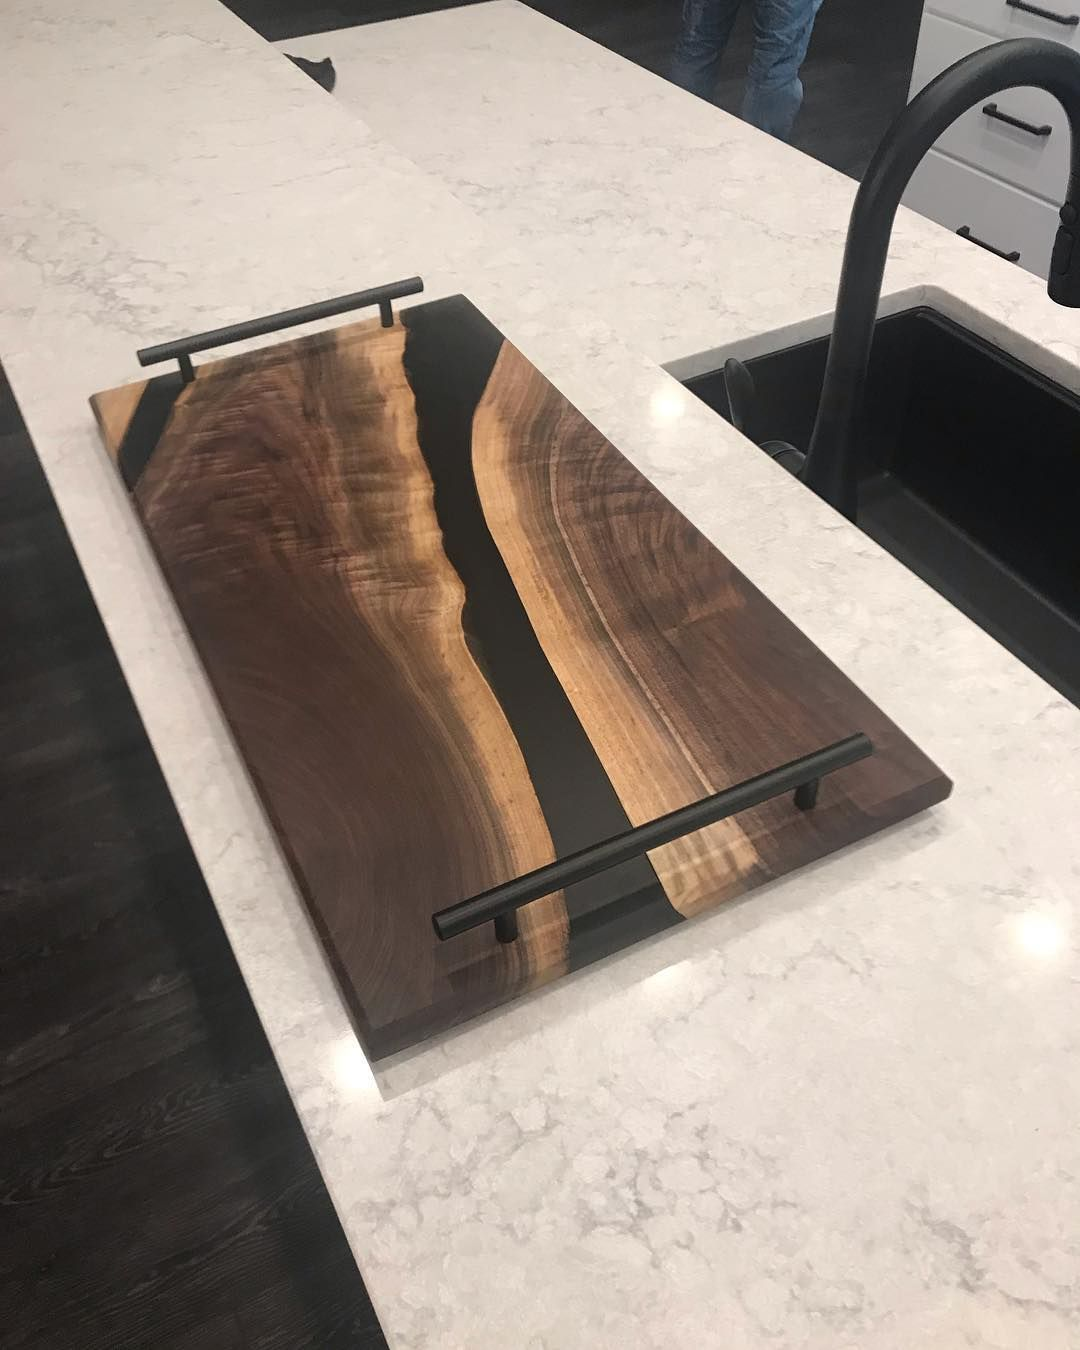 Here Is Another Modern Serving Tray That Black Just Makes Everything Pop Osmo Usa Ecopox Wood Resin Table Modern Serving Trays Modern Woodworking Projects [ 1350 x 1080 Pixel ]